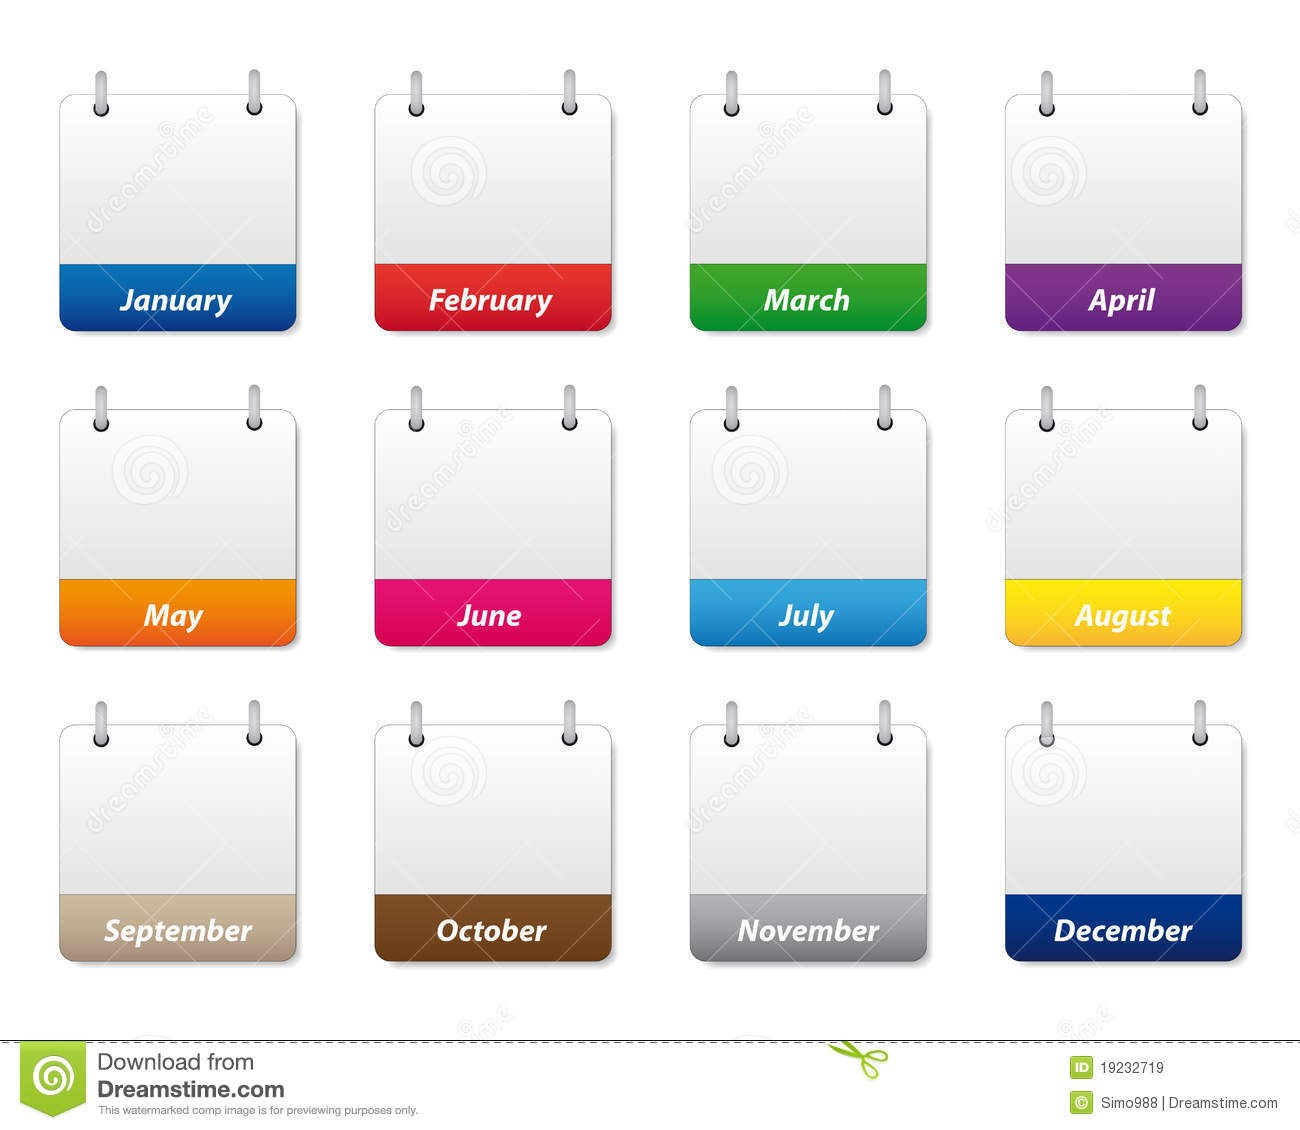 blank calendar template for kids  Calendar Icons Set Royalty Free Stock Images - Image: 19232719 - blank calendar template for kids